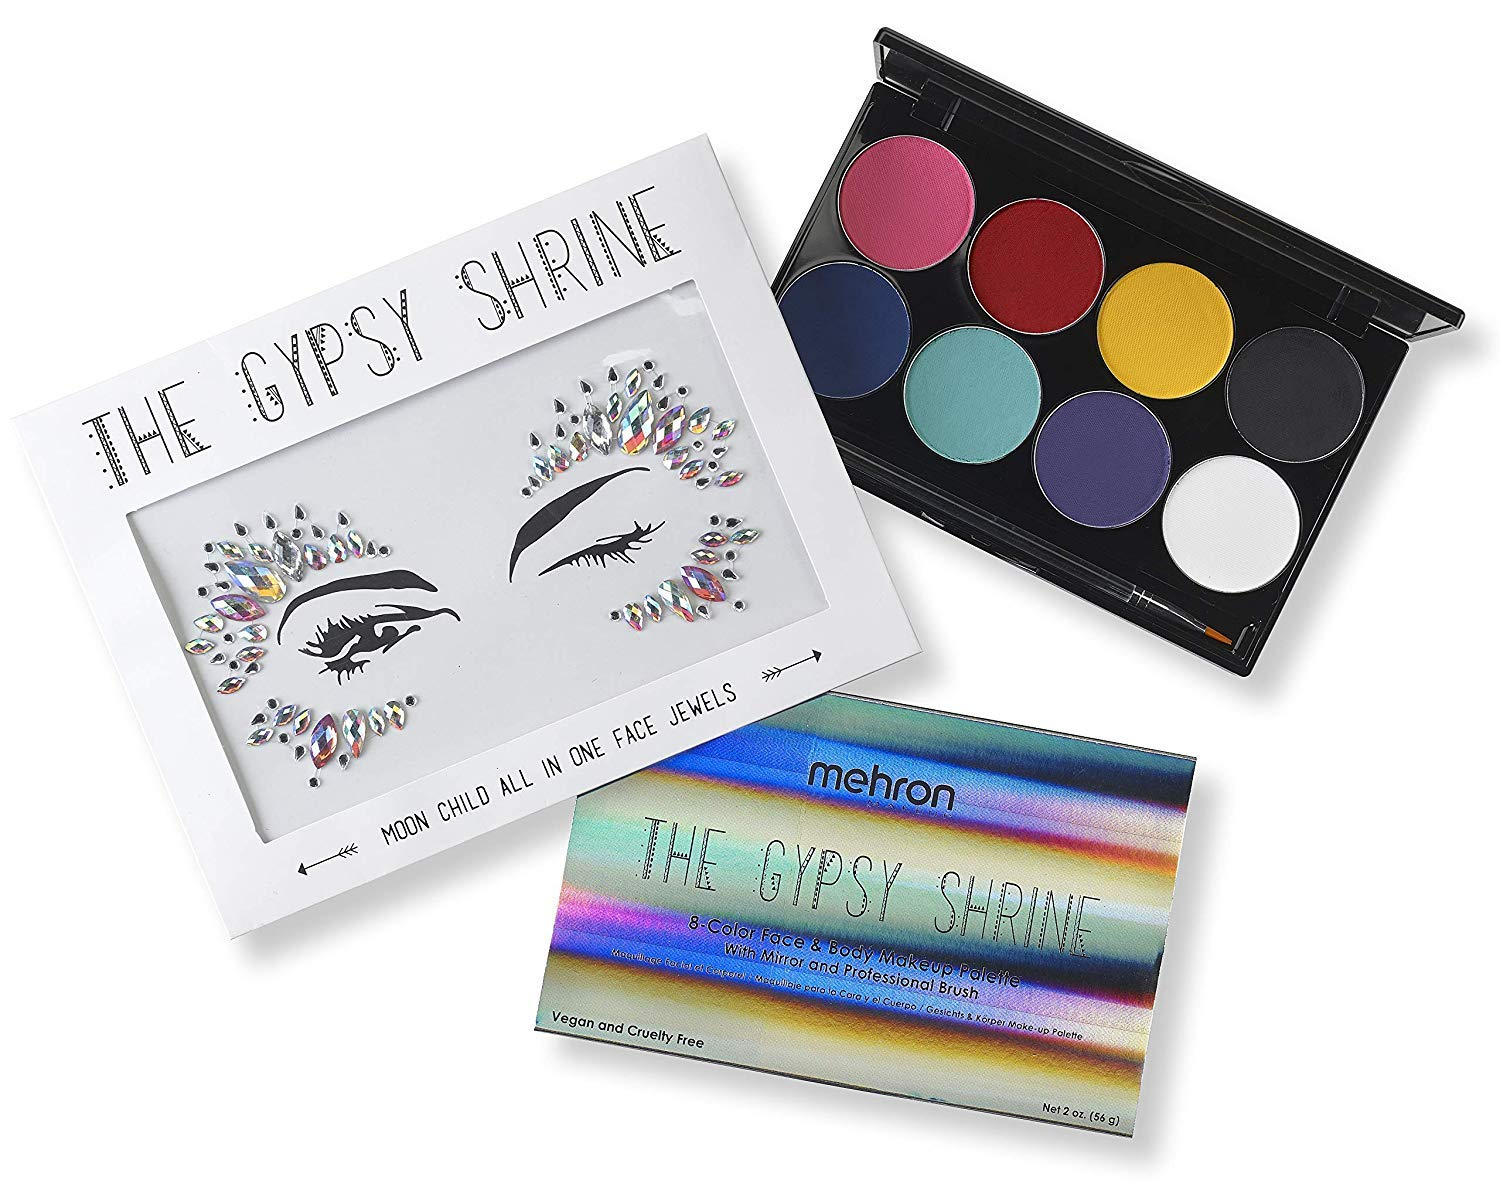 Mehron Makeup Face & Body Makeup Palette with The Gypsy Shrine Jewel Collection (Moon Child) by Mehron